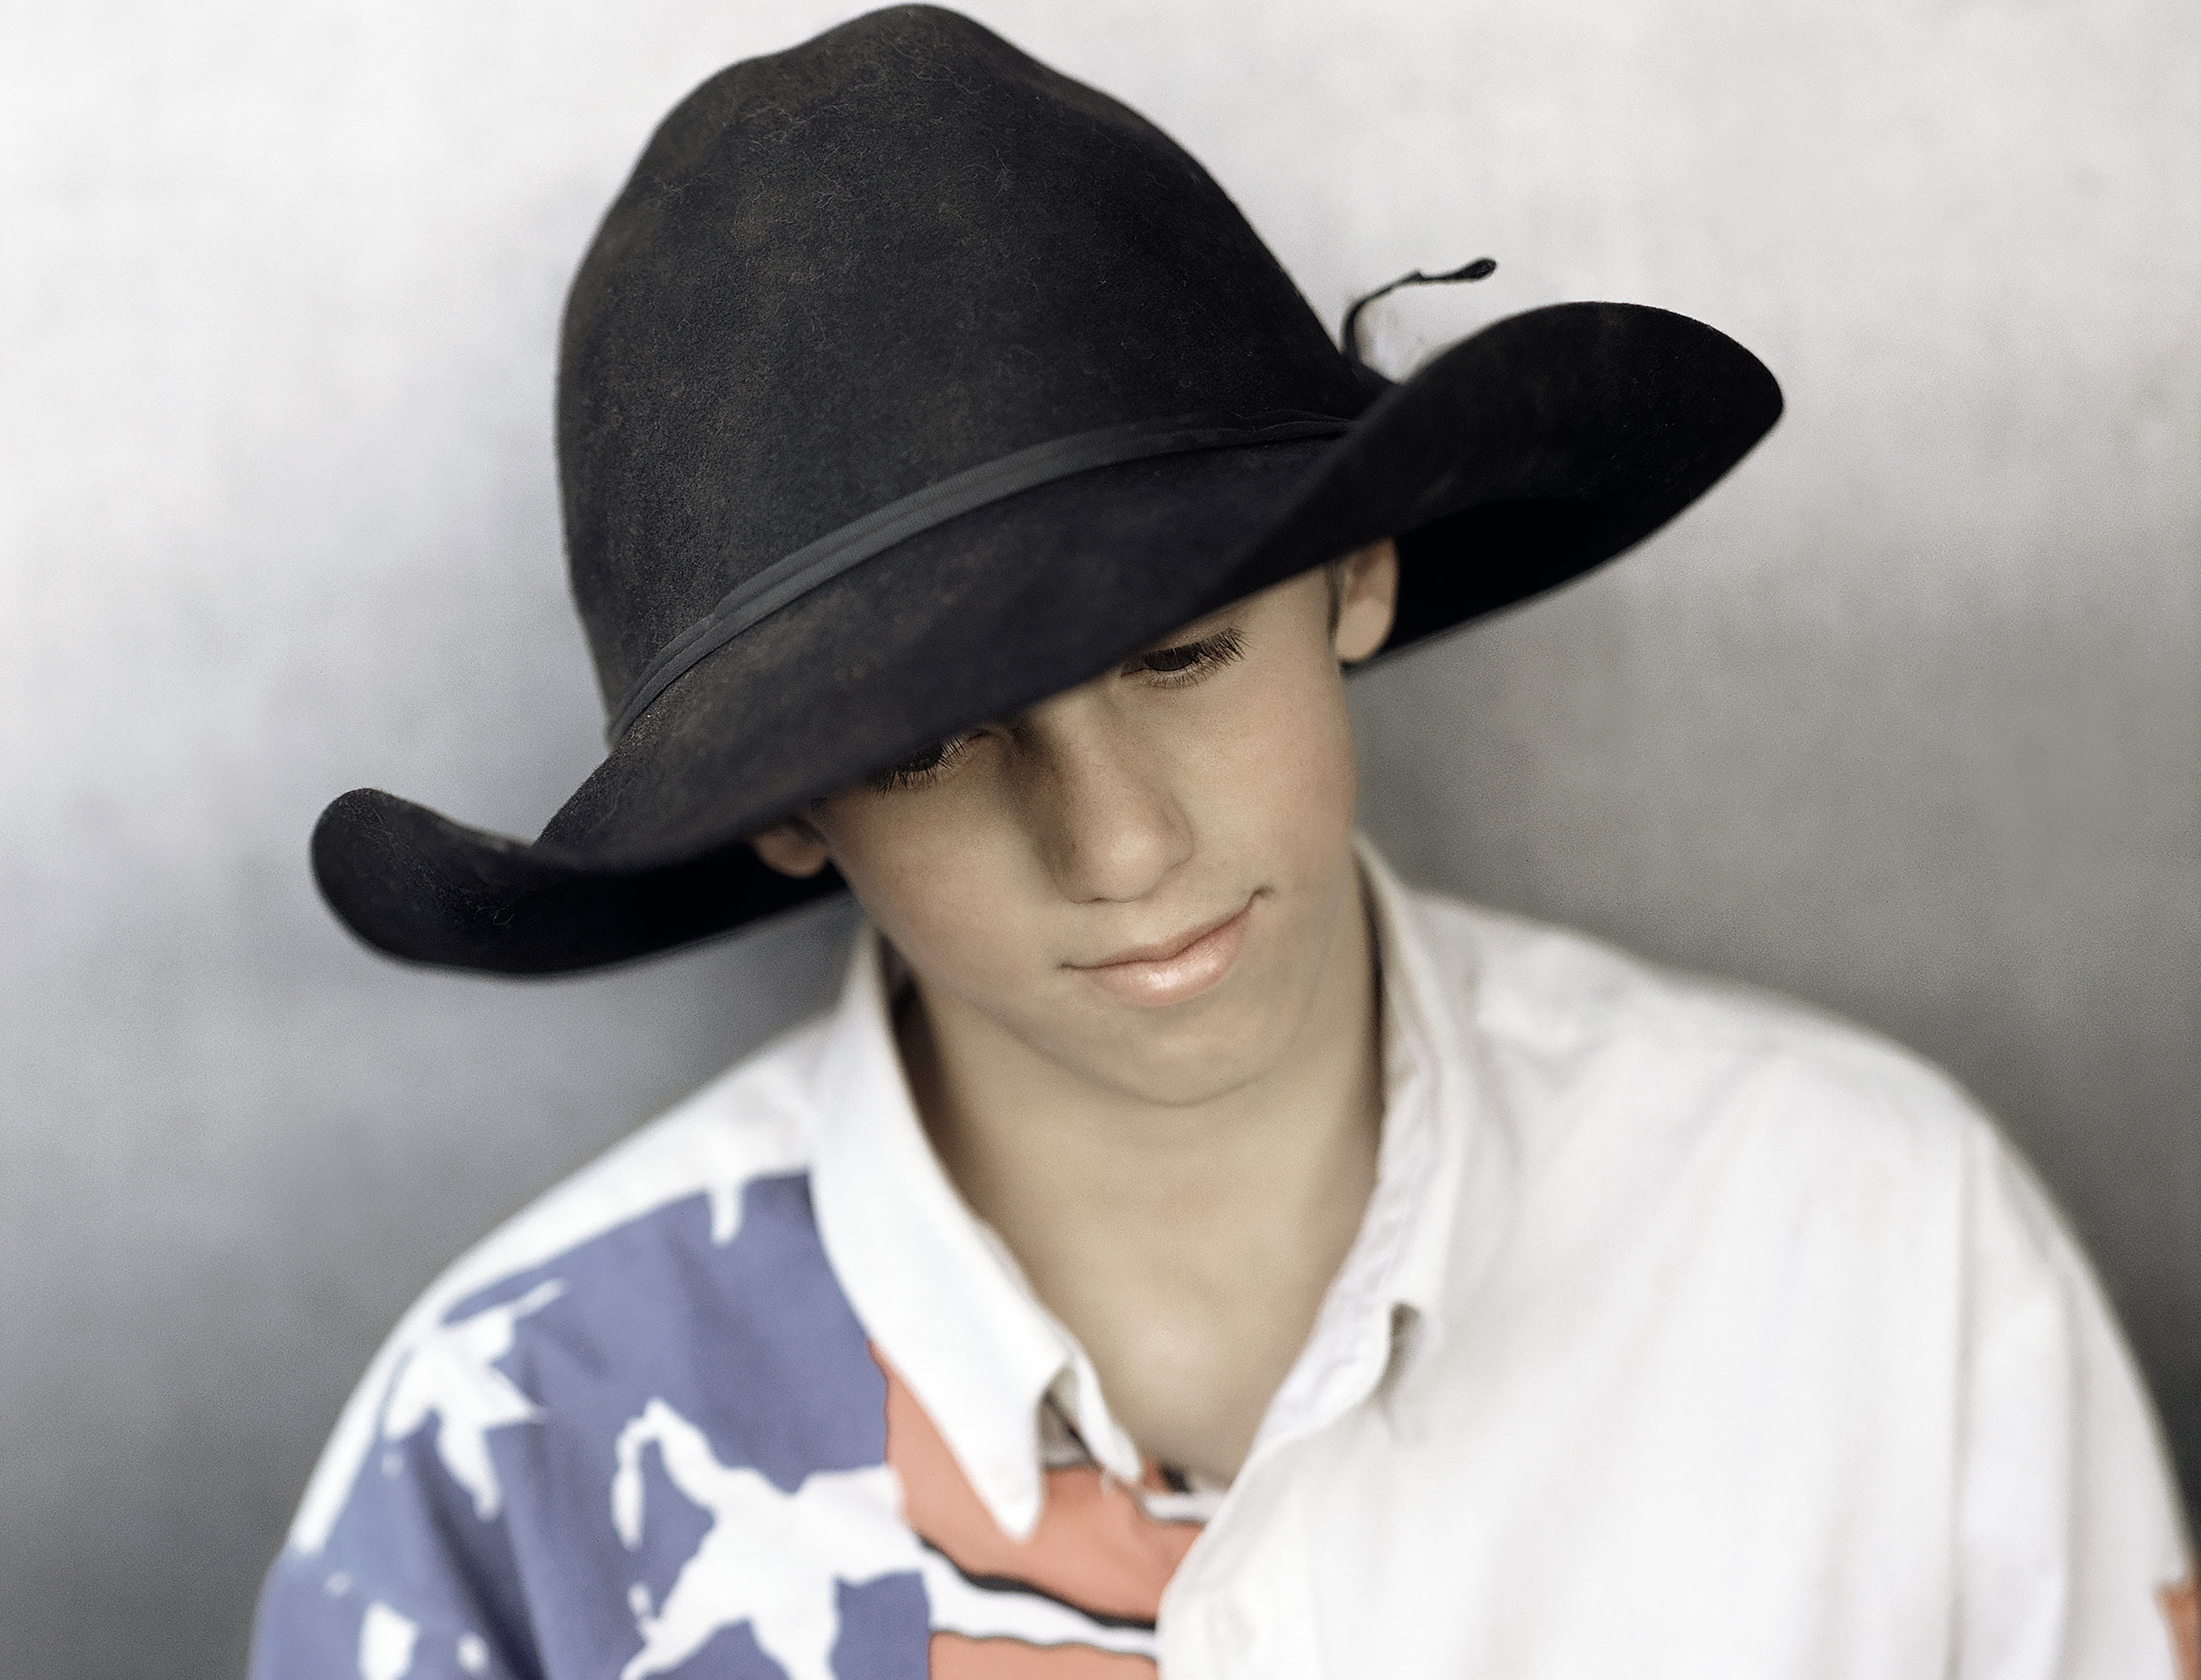 Portrait of a young cowboy wearing a black cowboy hat and a patriotic western shirt